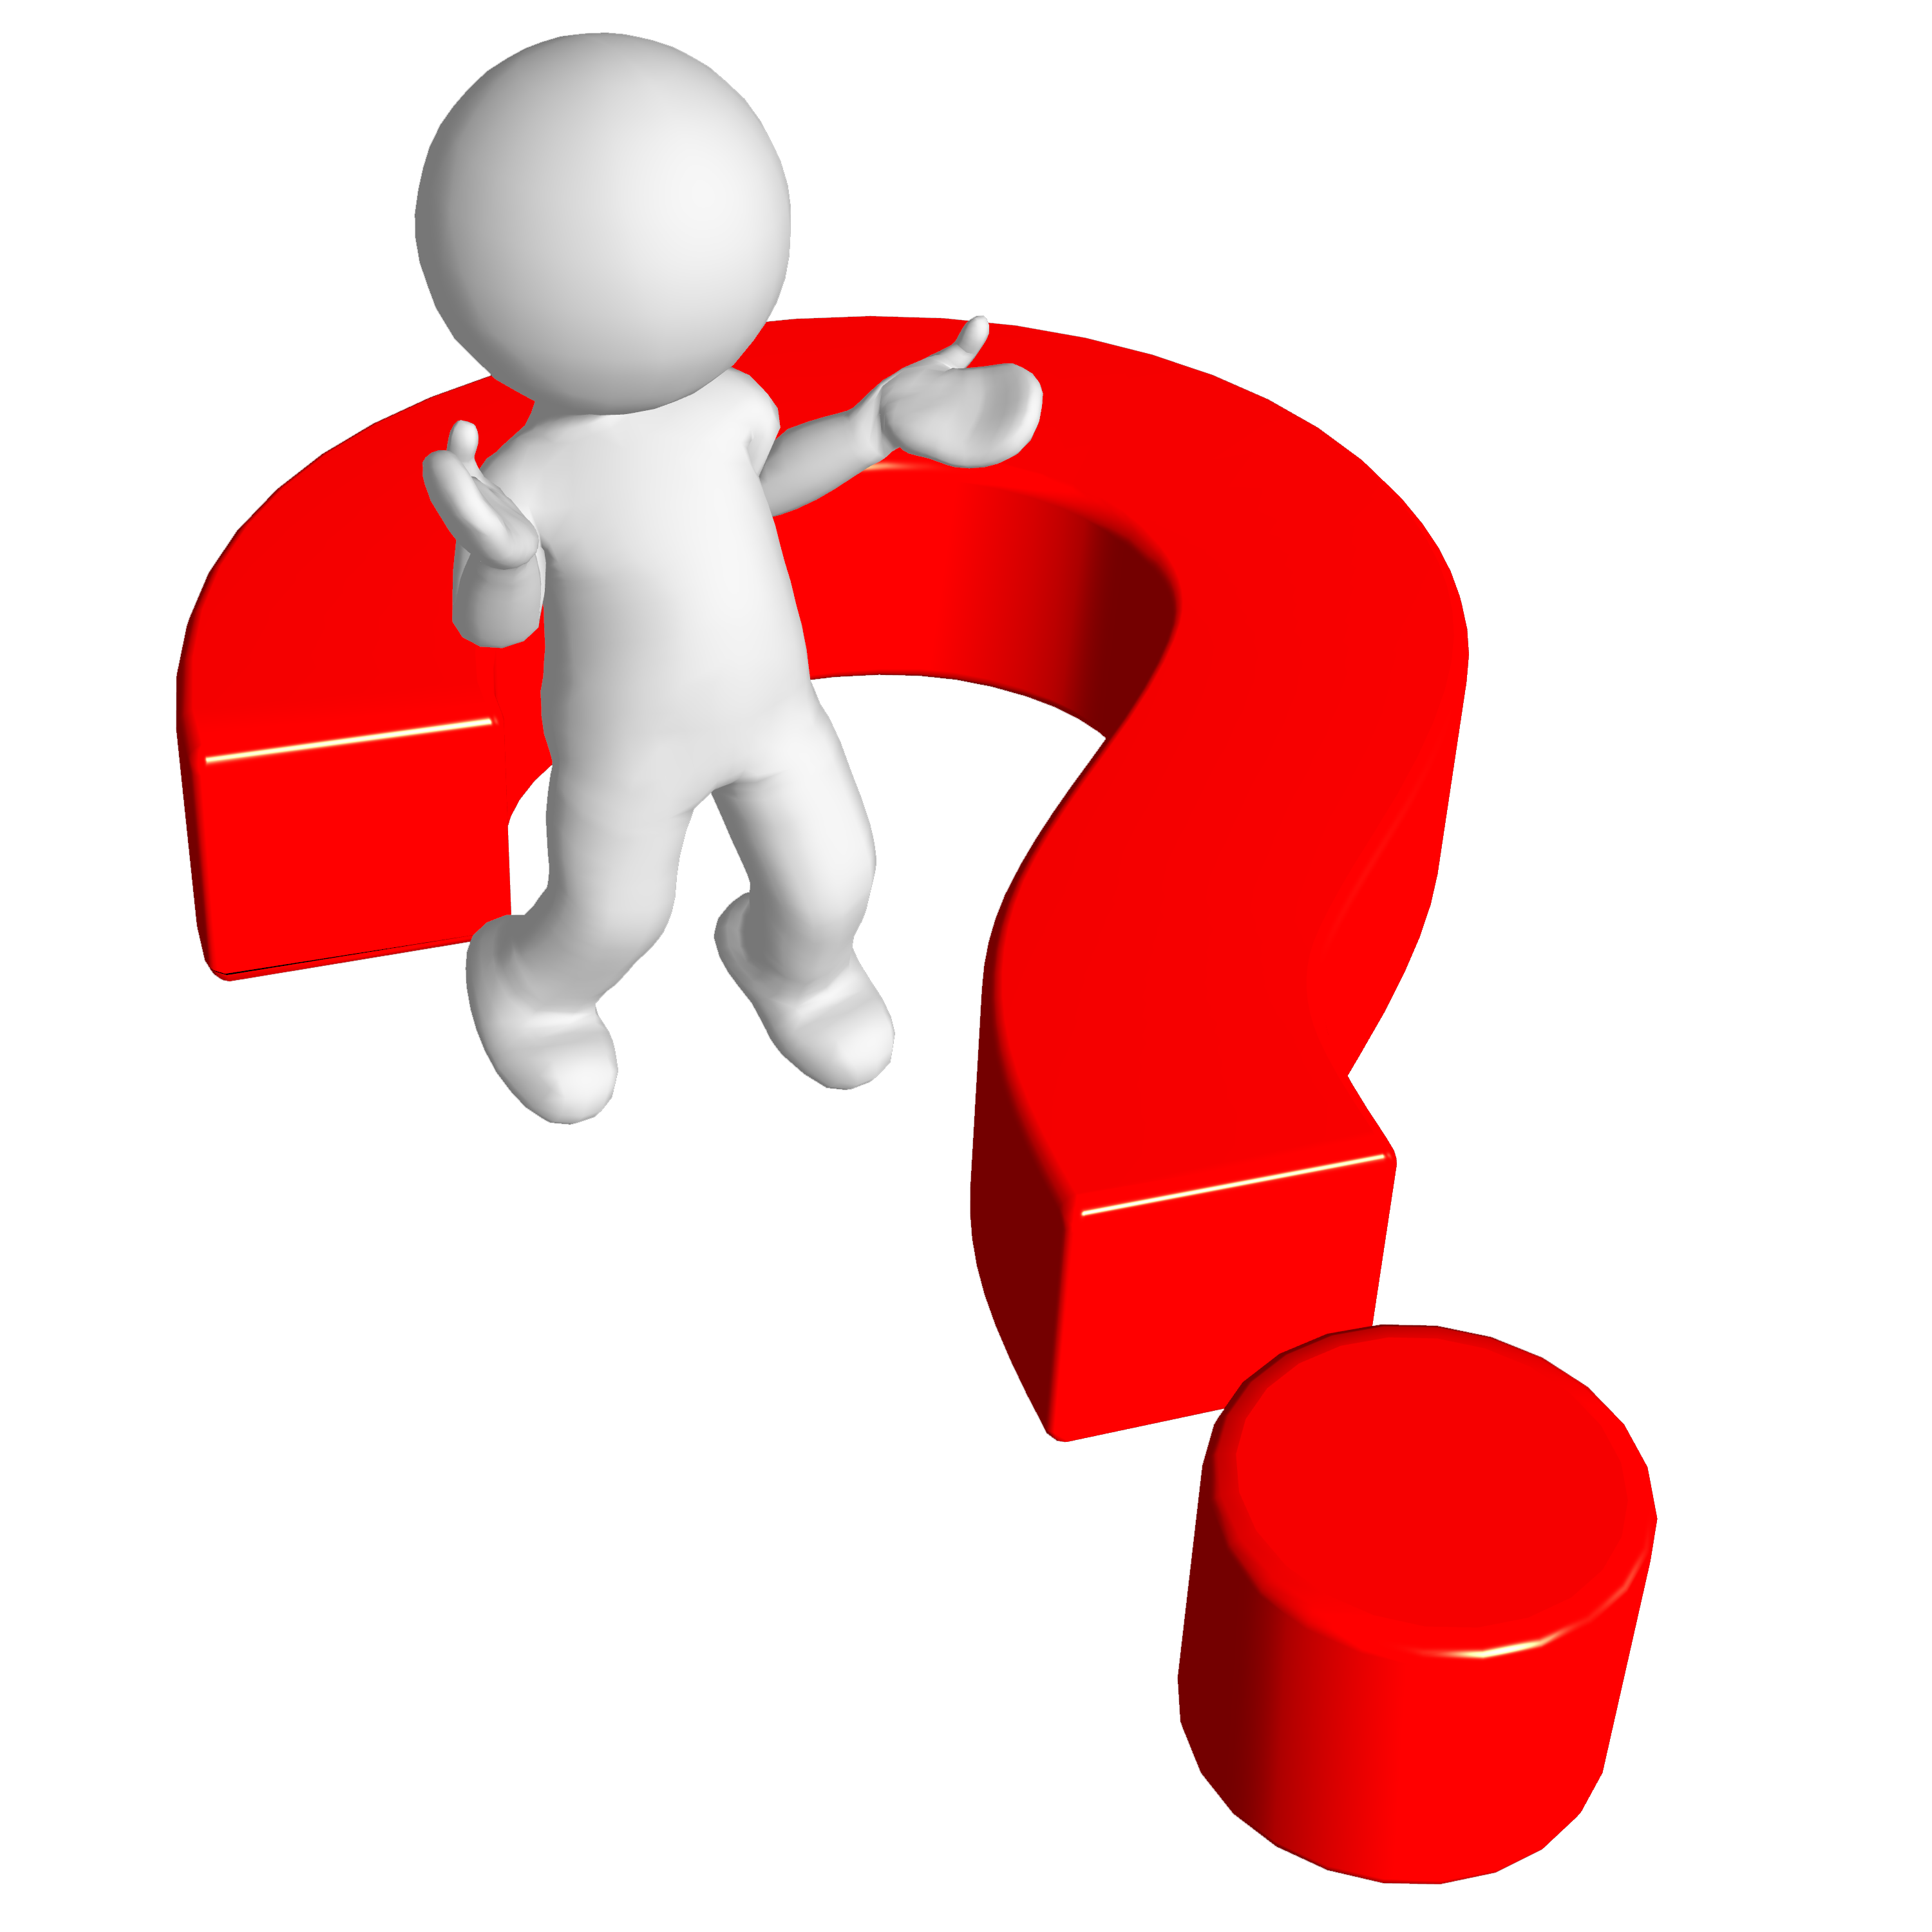 Thoughts clipart question. How to learn affiliate